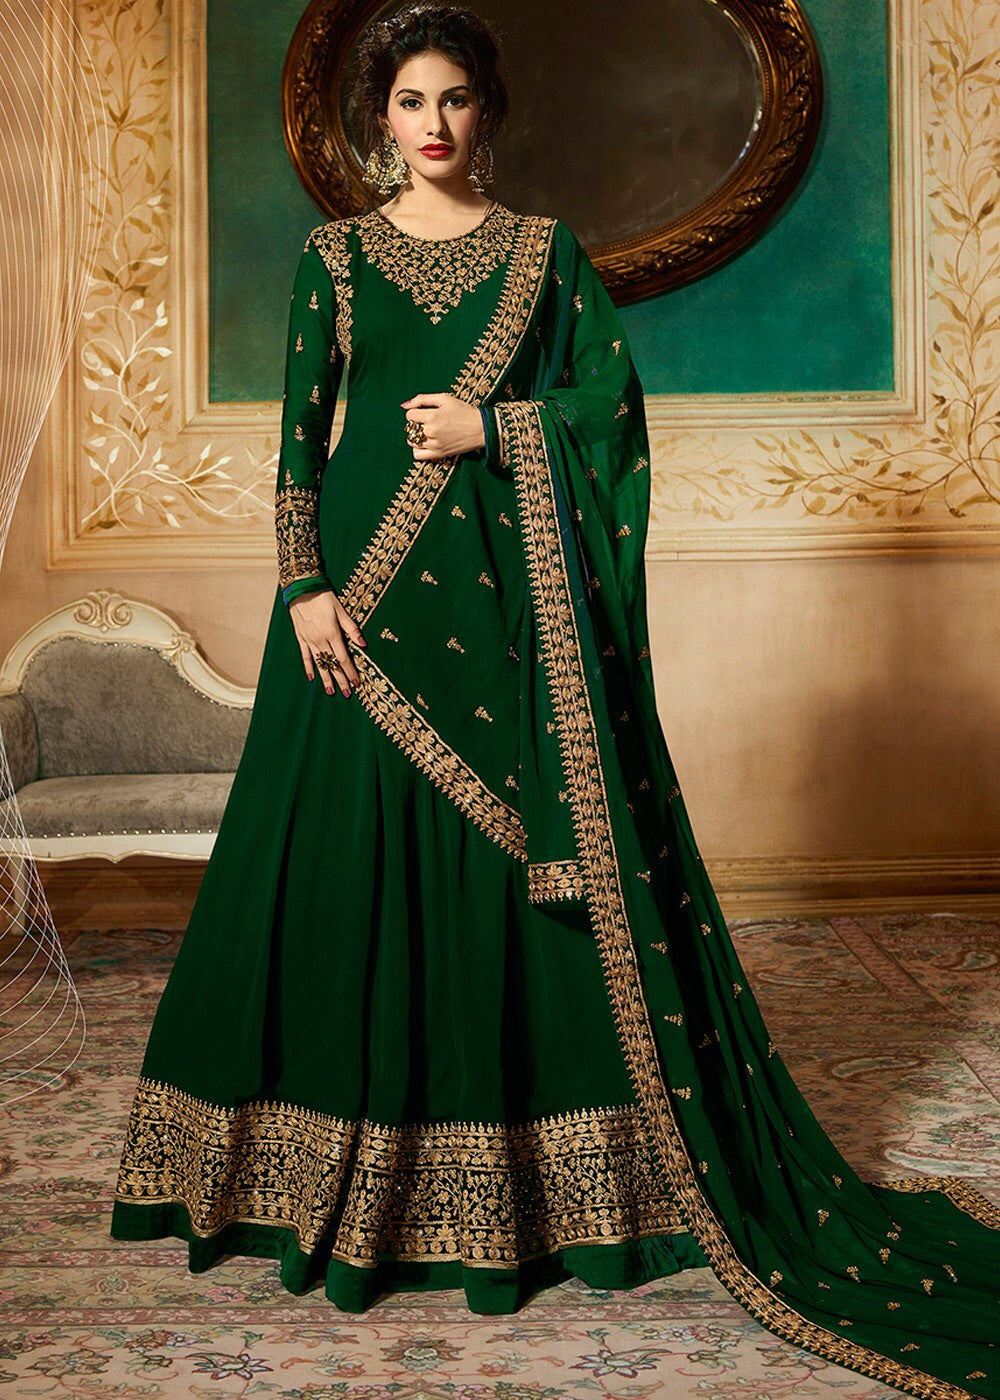 499 - Anarkali (Available in 2 Colours)